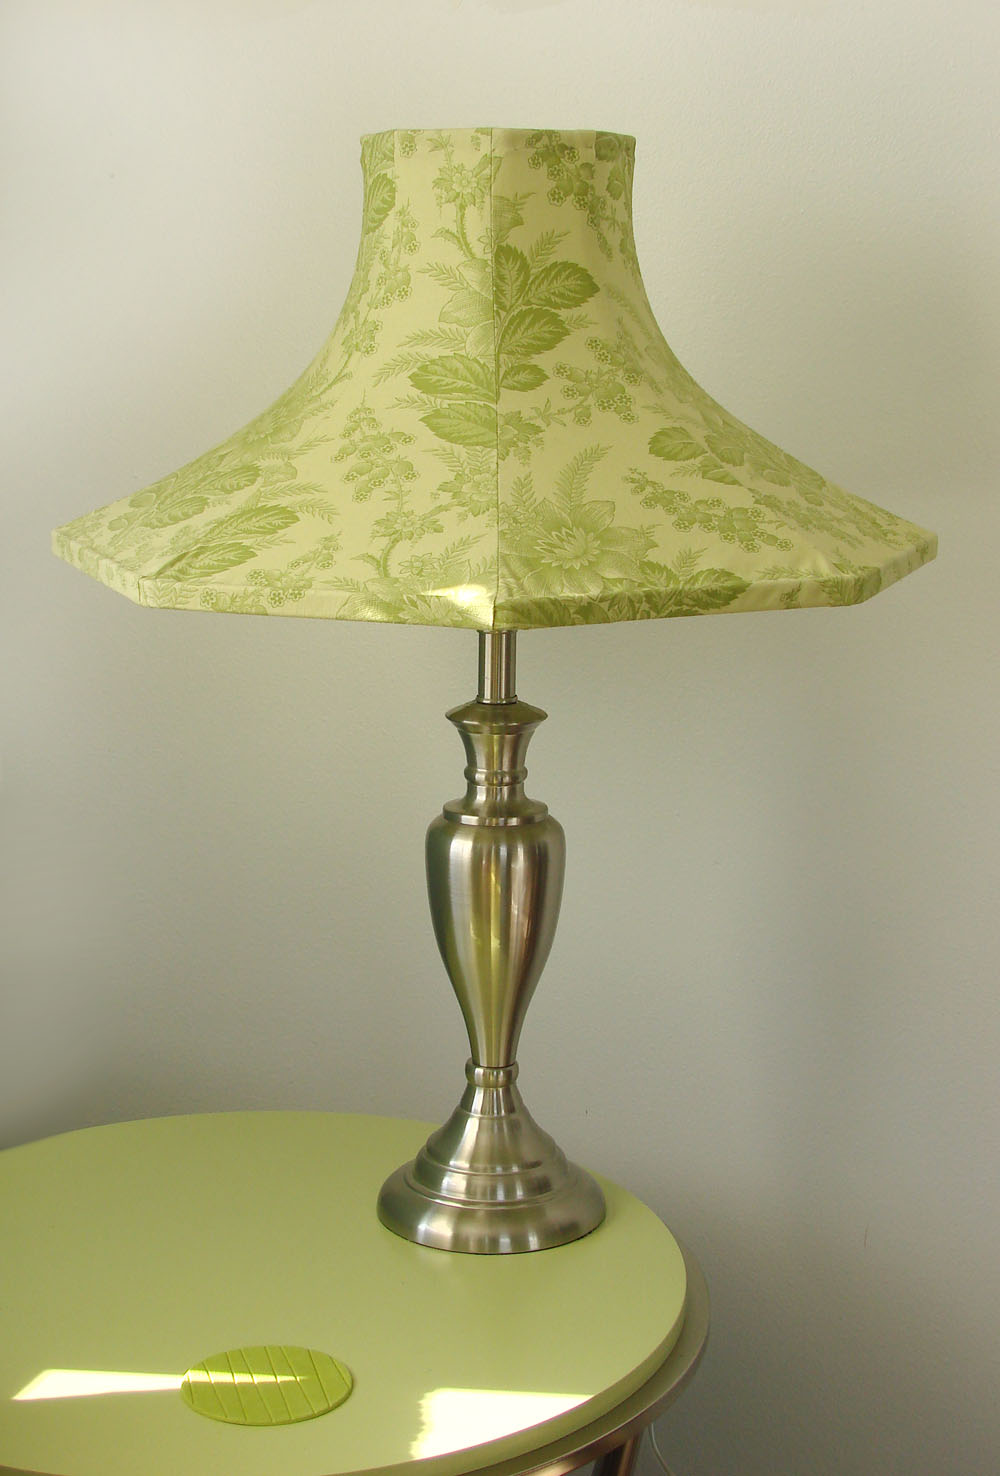 Funky Lamp Shades : Get scatty funky lamp shade